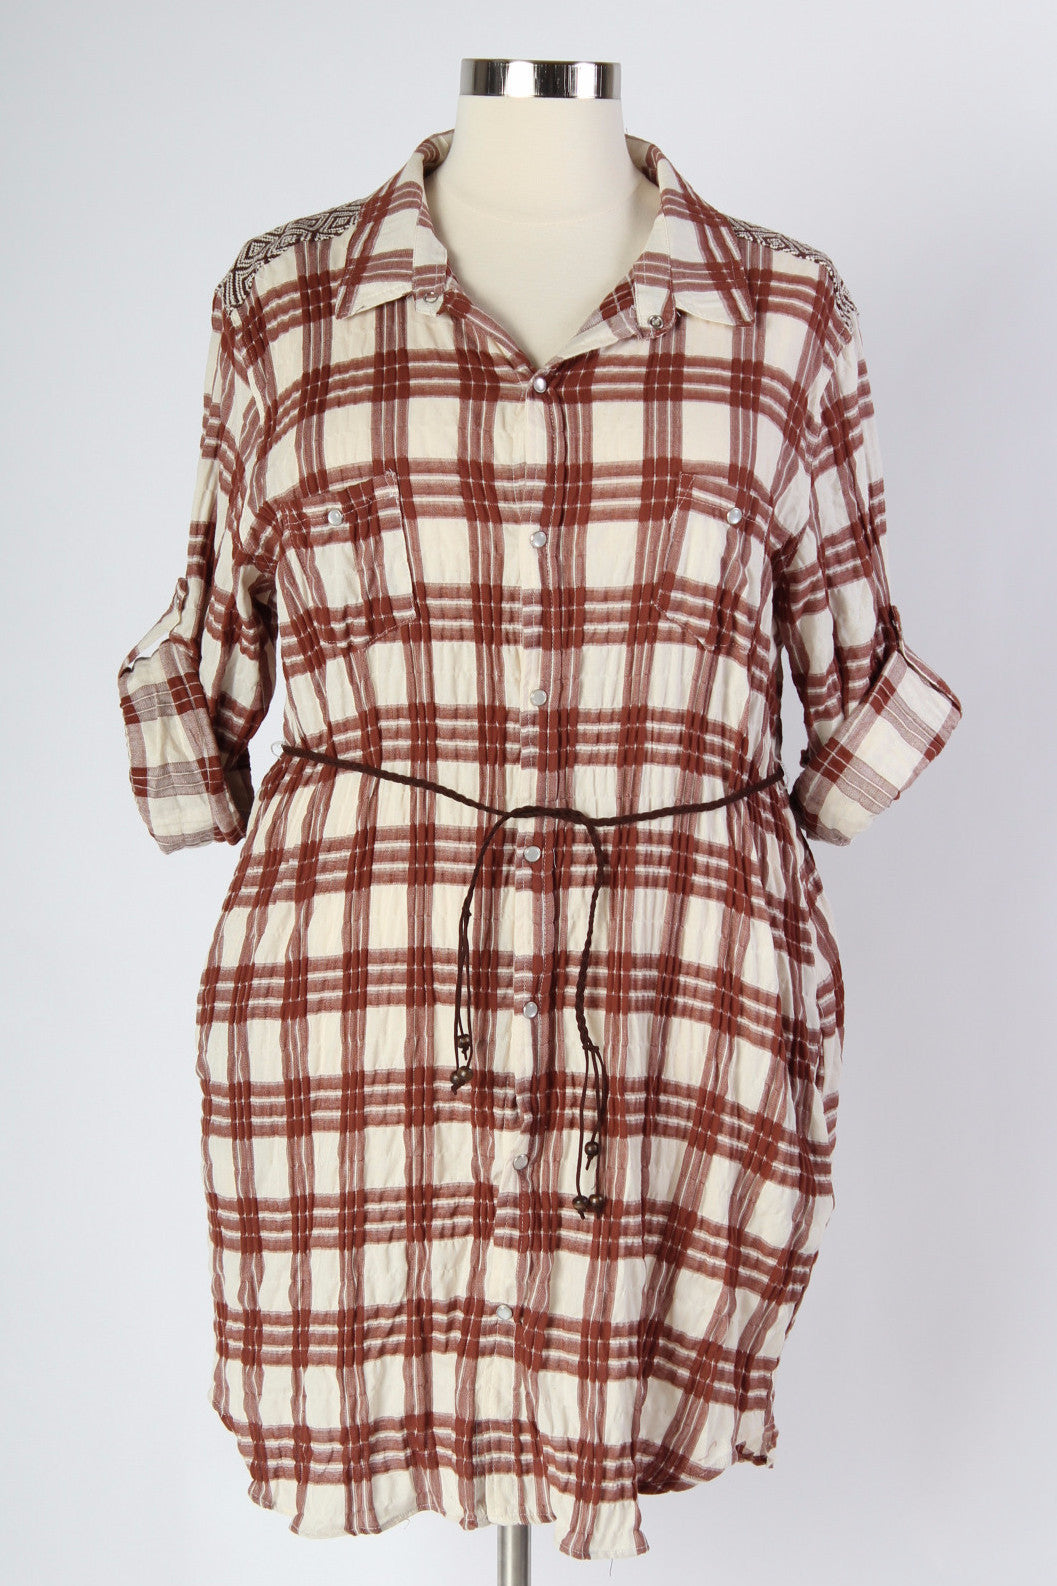 As you might know, we have a bit of a love affair with plaid. Luckily now we have the perfect plaid dress for the warm months. Button up and belted, this dress shows off all your curves, while keeping you cool and comfortable. 100% Cotton Hand wash cold Hang to dry Imported Also available in black! Front Back Arm hole Bicep Size: 16/18 36.5